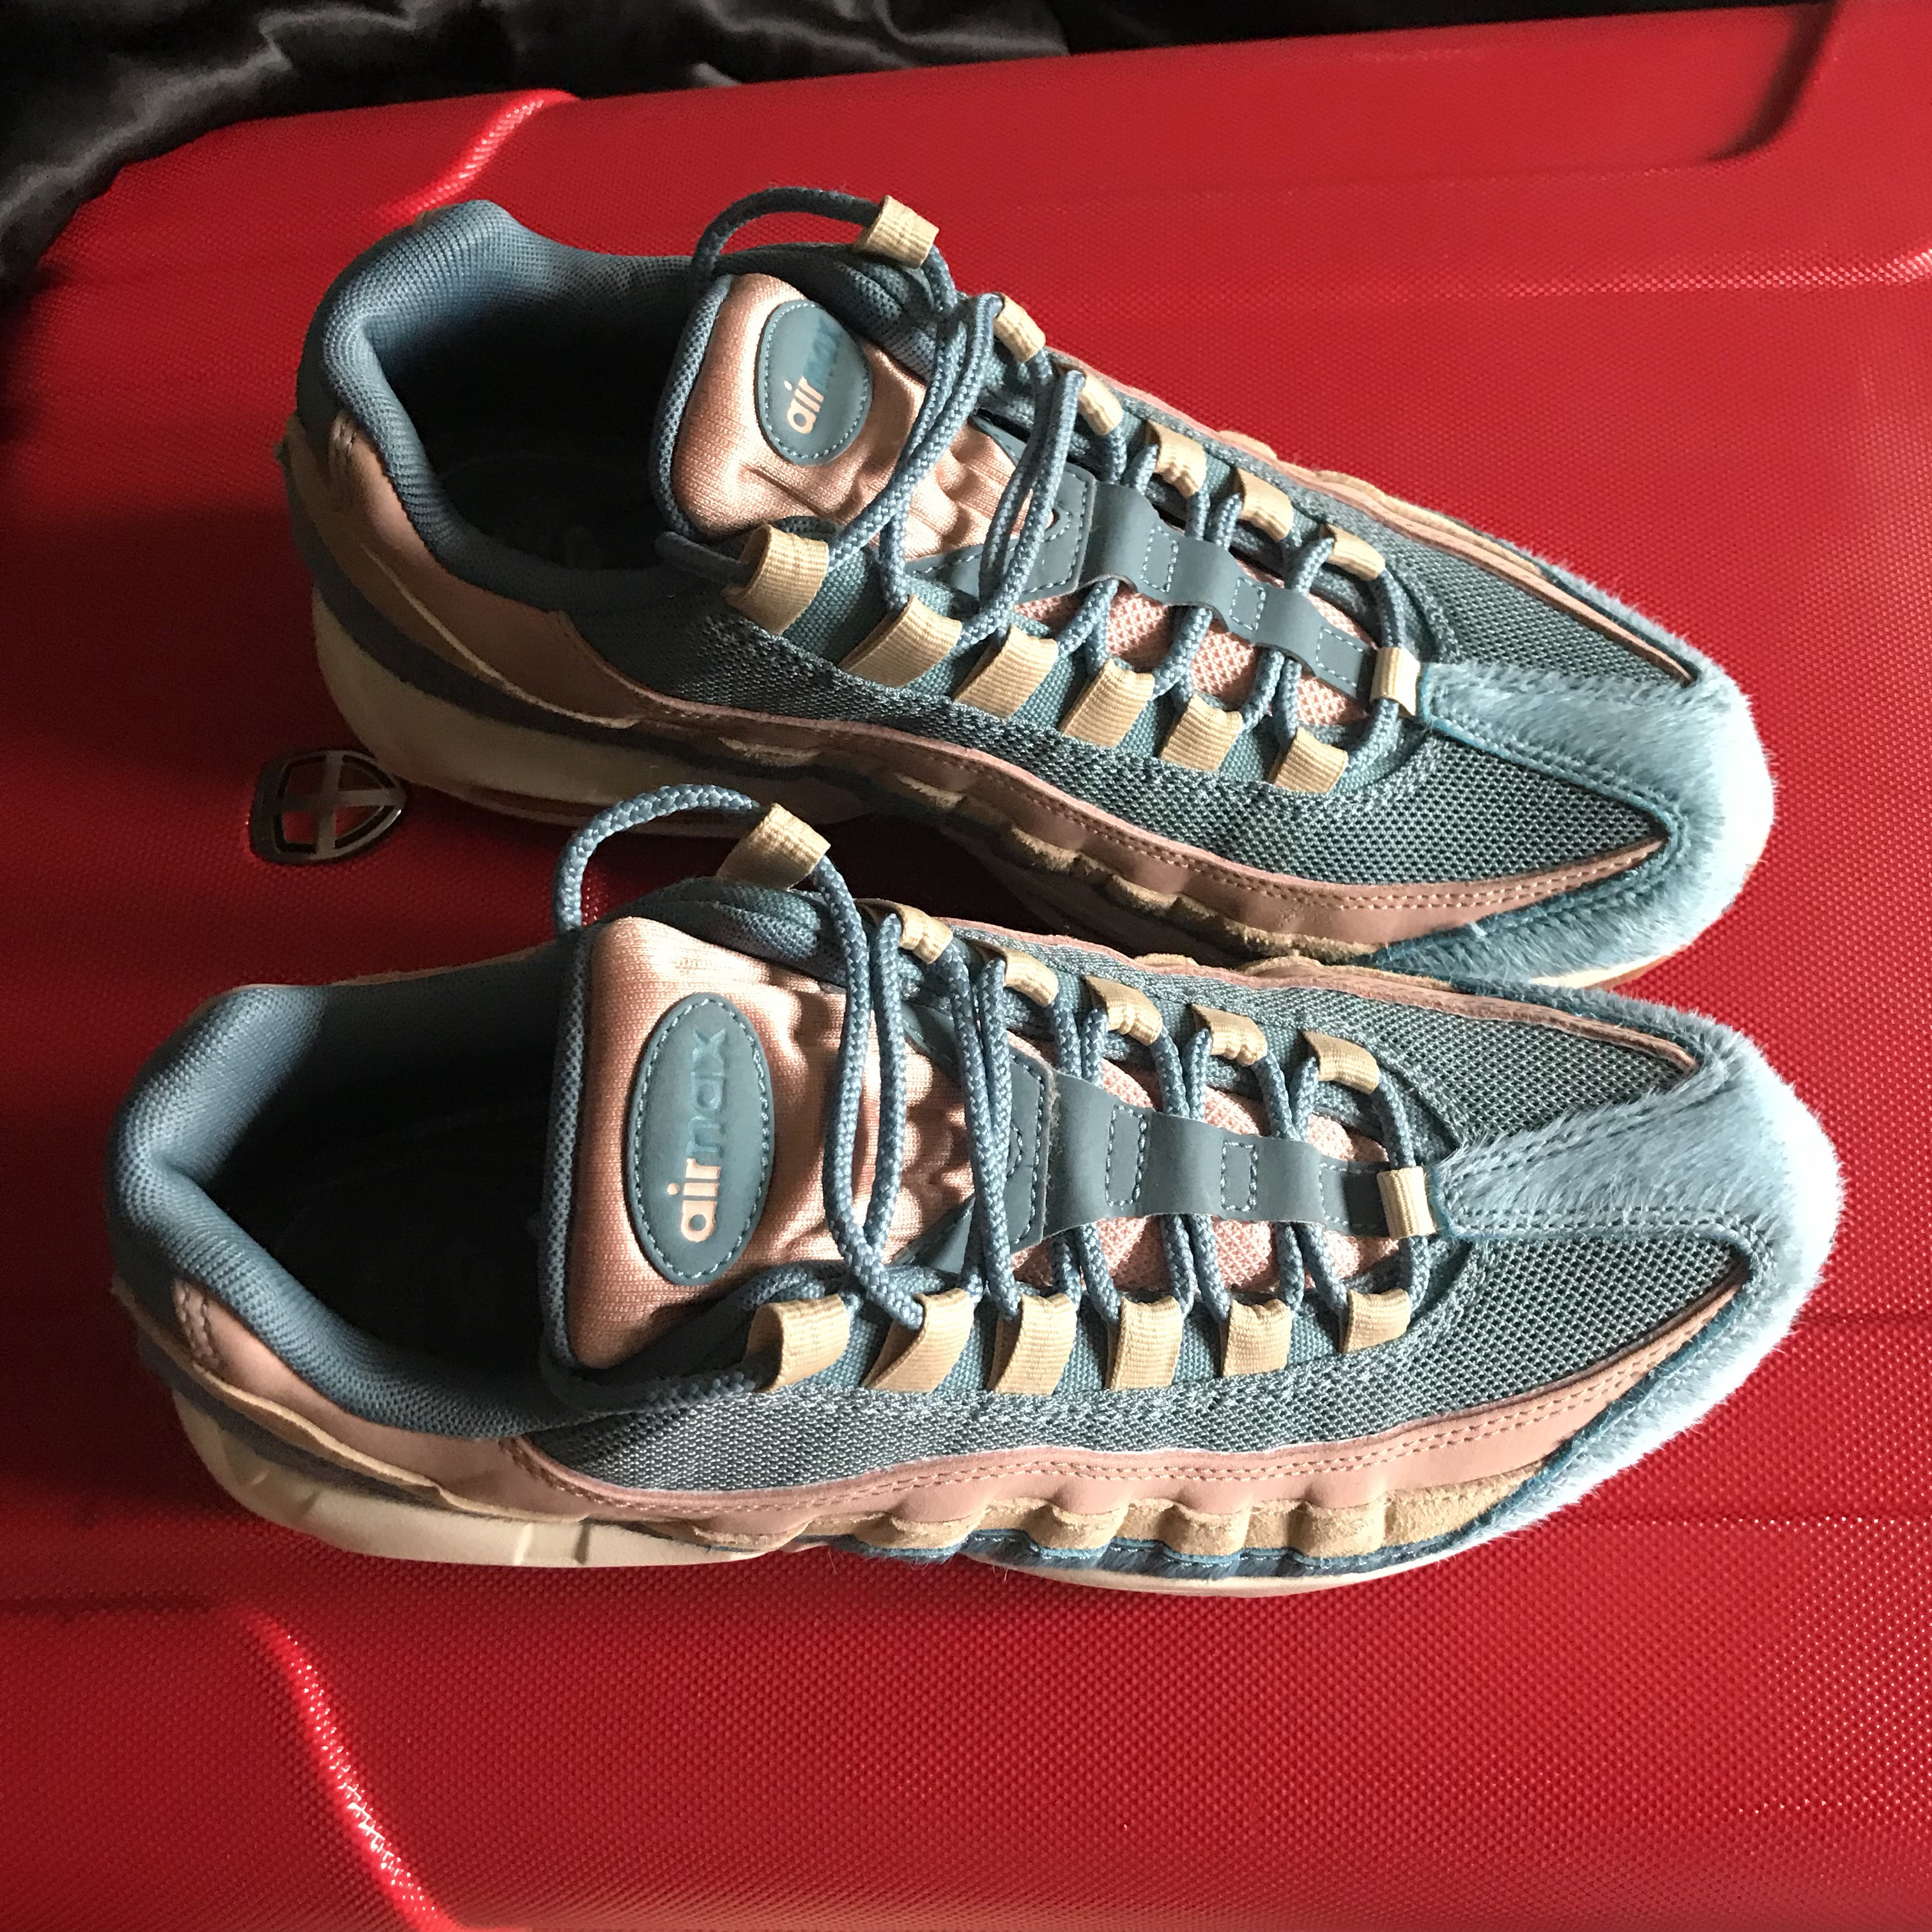 Nike Air Max 95 LX Woman's Size 7 Barely worn in Depop